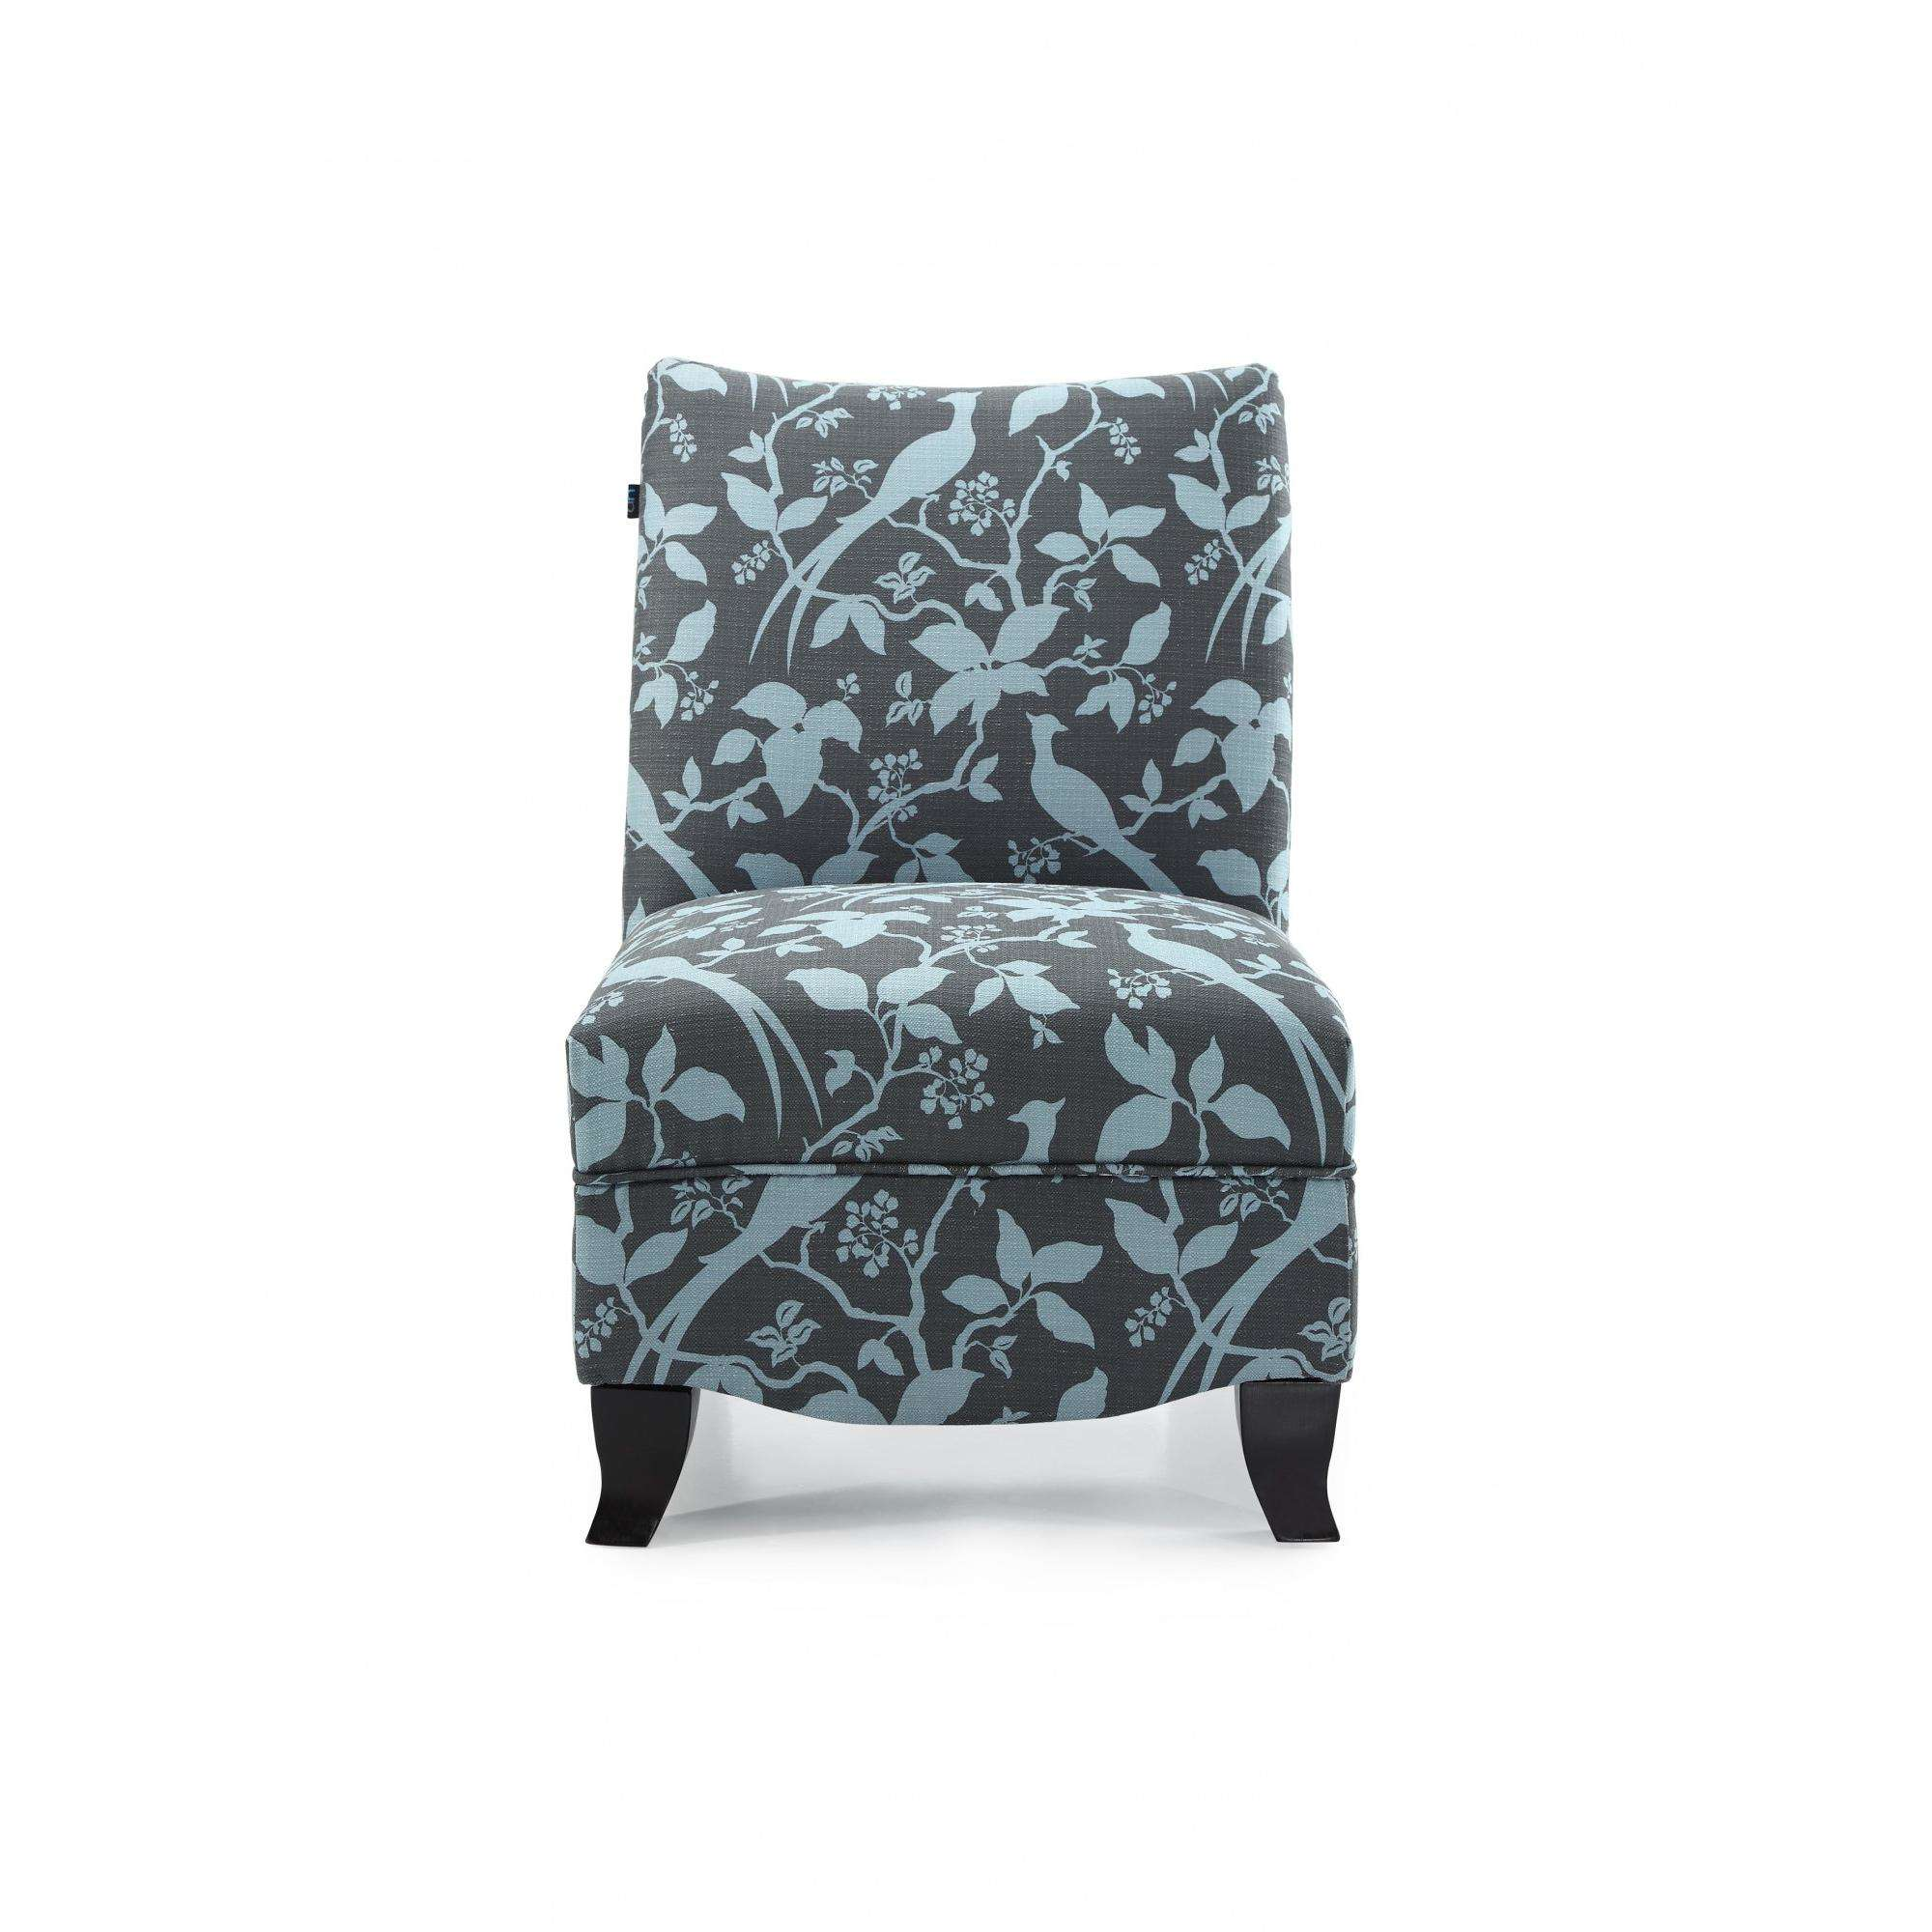 DHI Donovan Bardot Upholstered Accent Chair, Multiple Colors